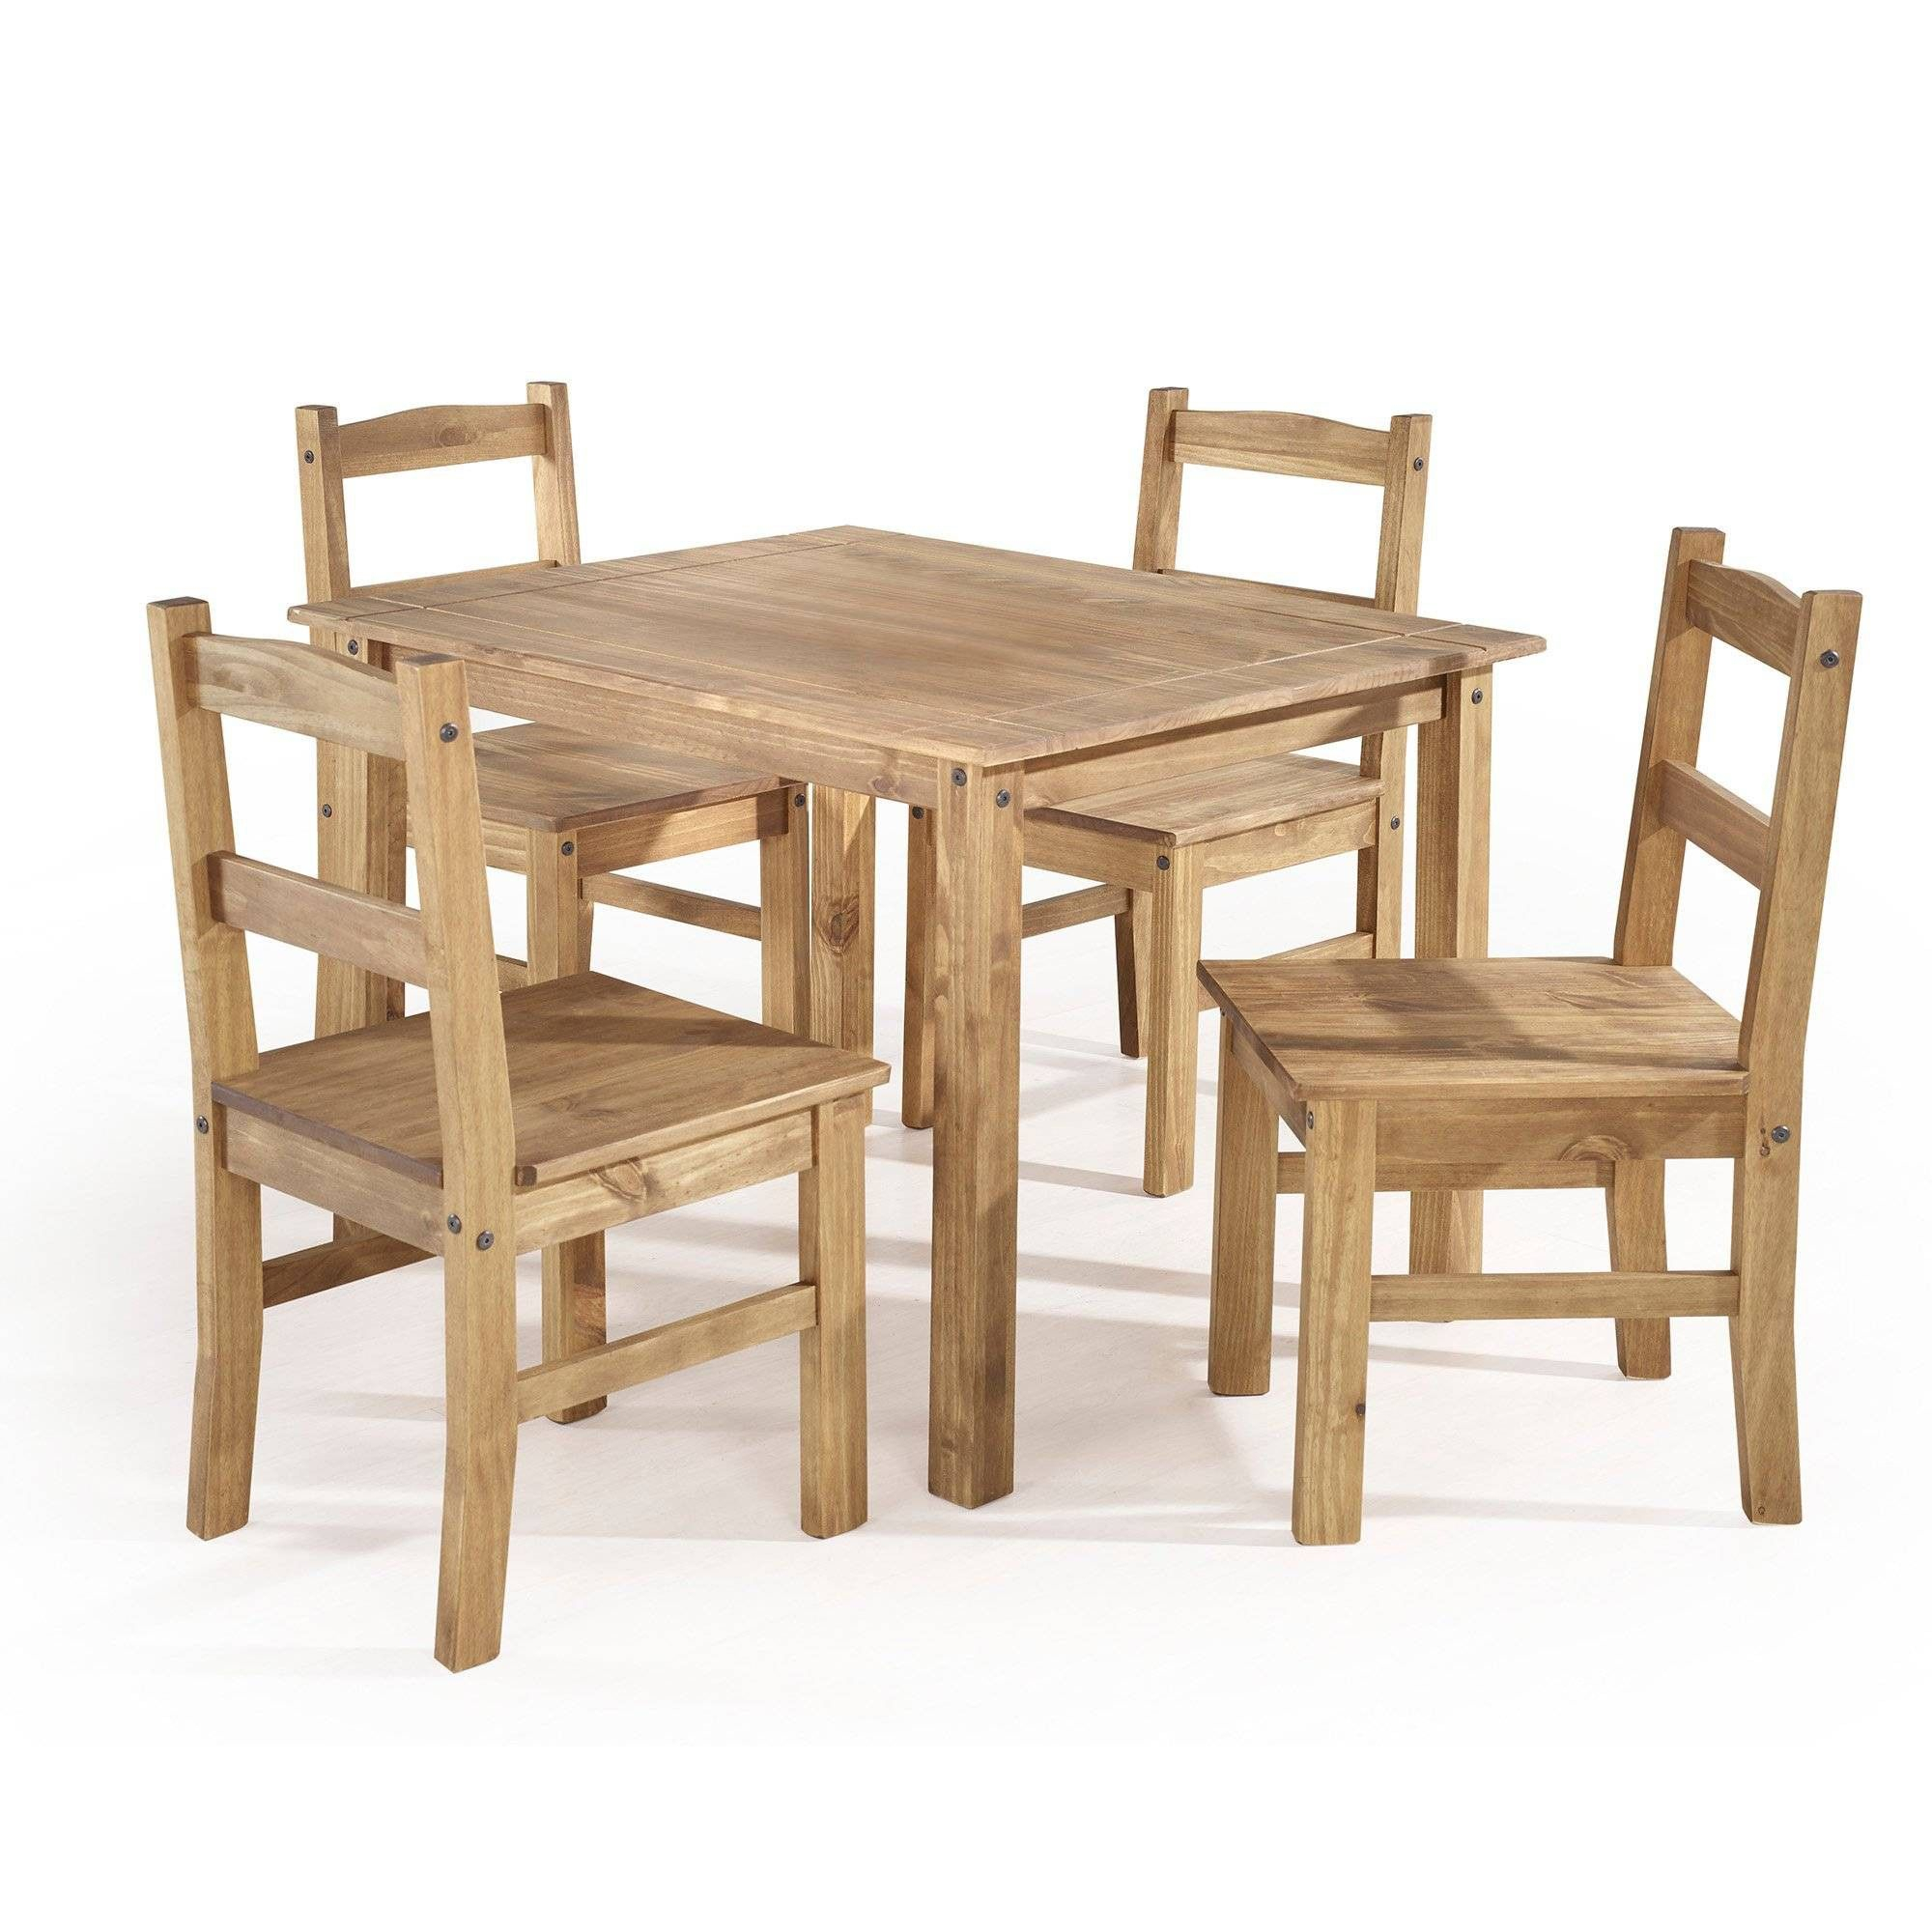 5Pc York Solid Wood Dining Set Natural – Manhattan Comfort In 2019 For 2018 Calla 5 Piece Dining Sets (View 15 of 20)